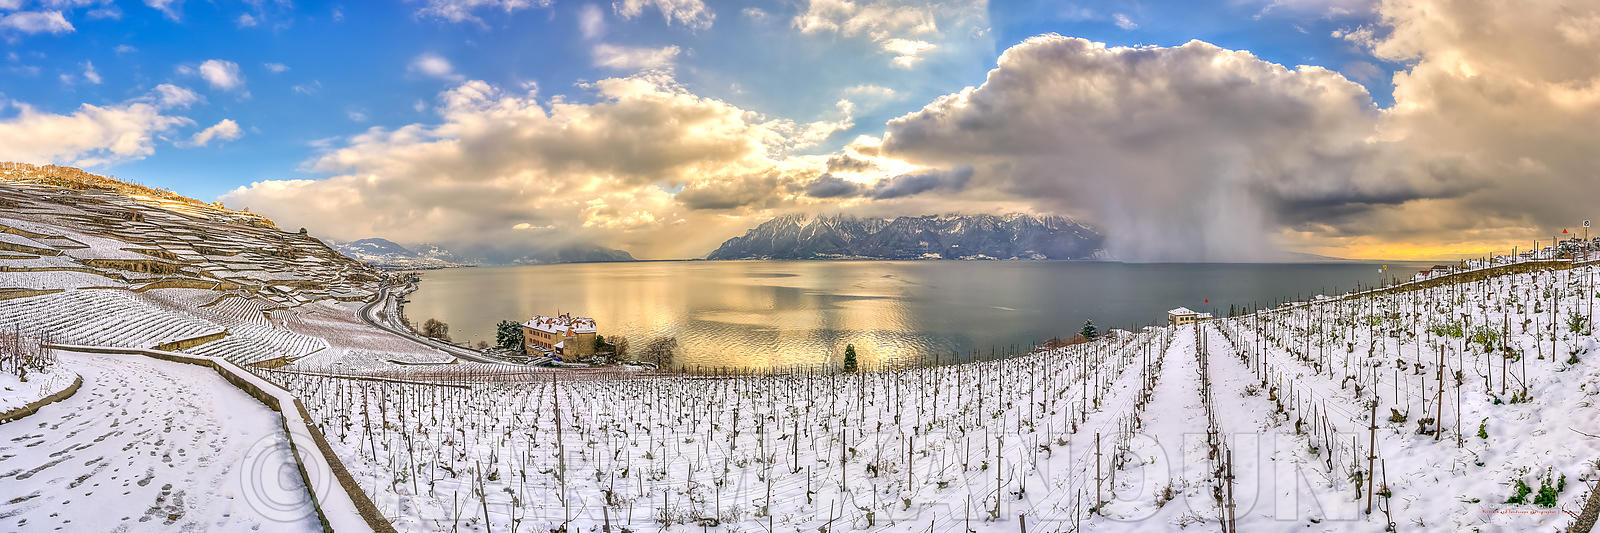 Snowy vineyard with a snow storm in the lake